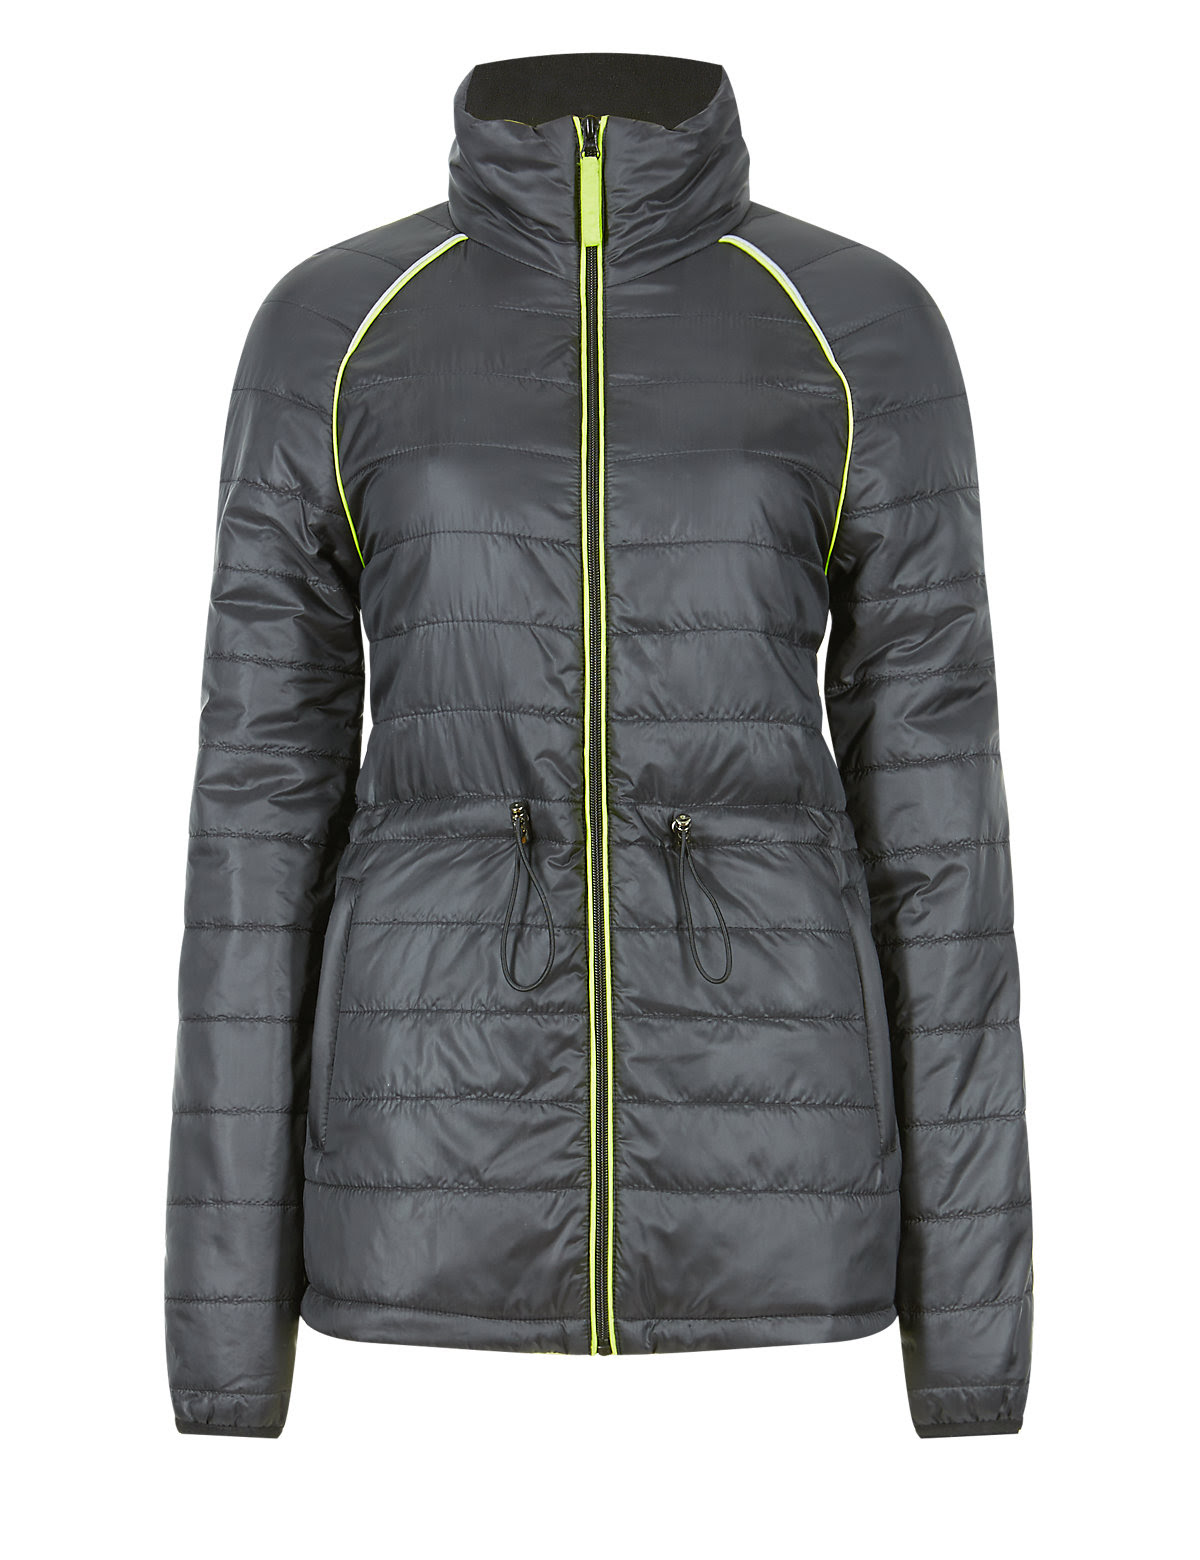 Thinsulate™ Padded Jacket with Stormwear™